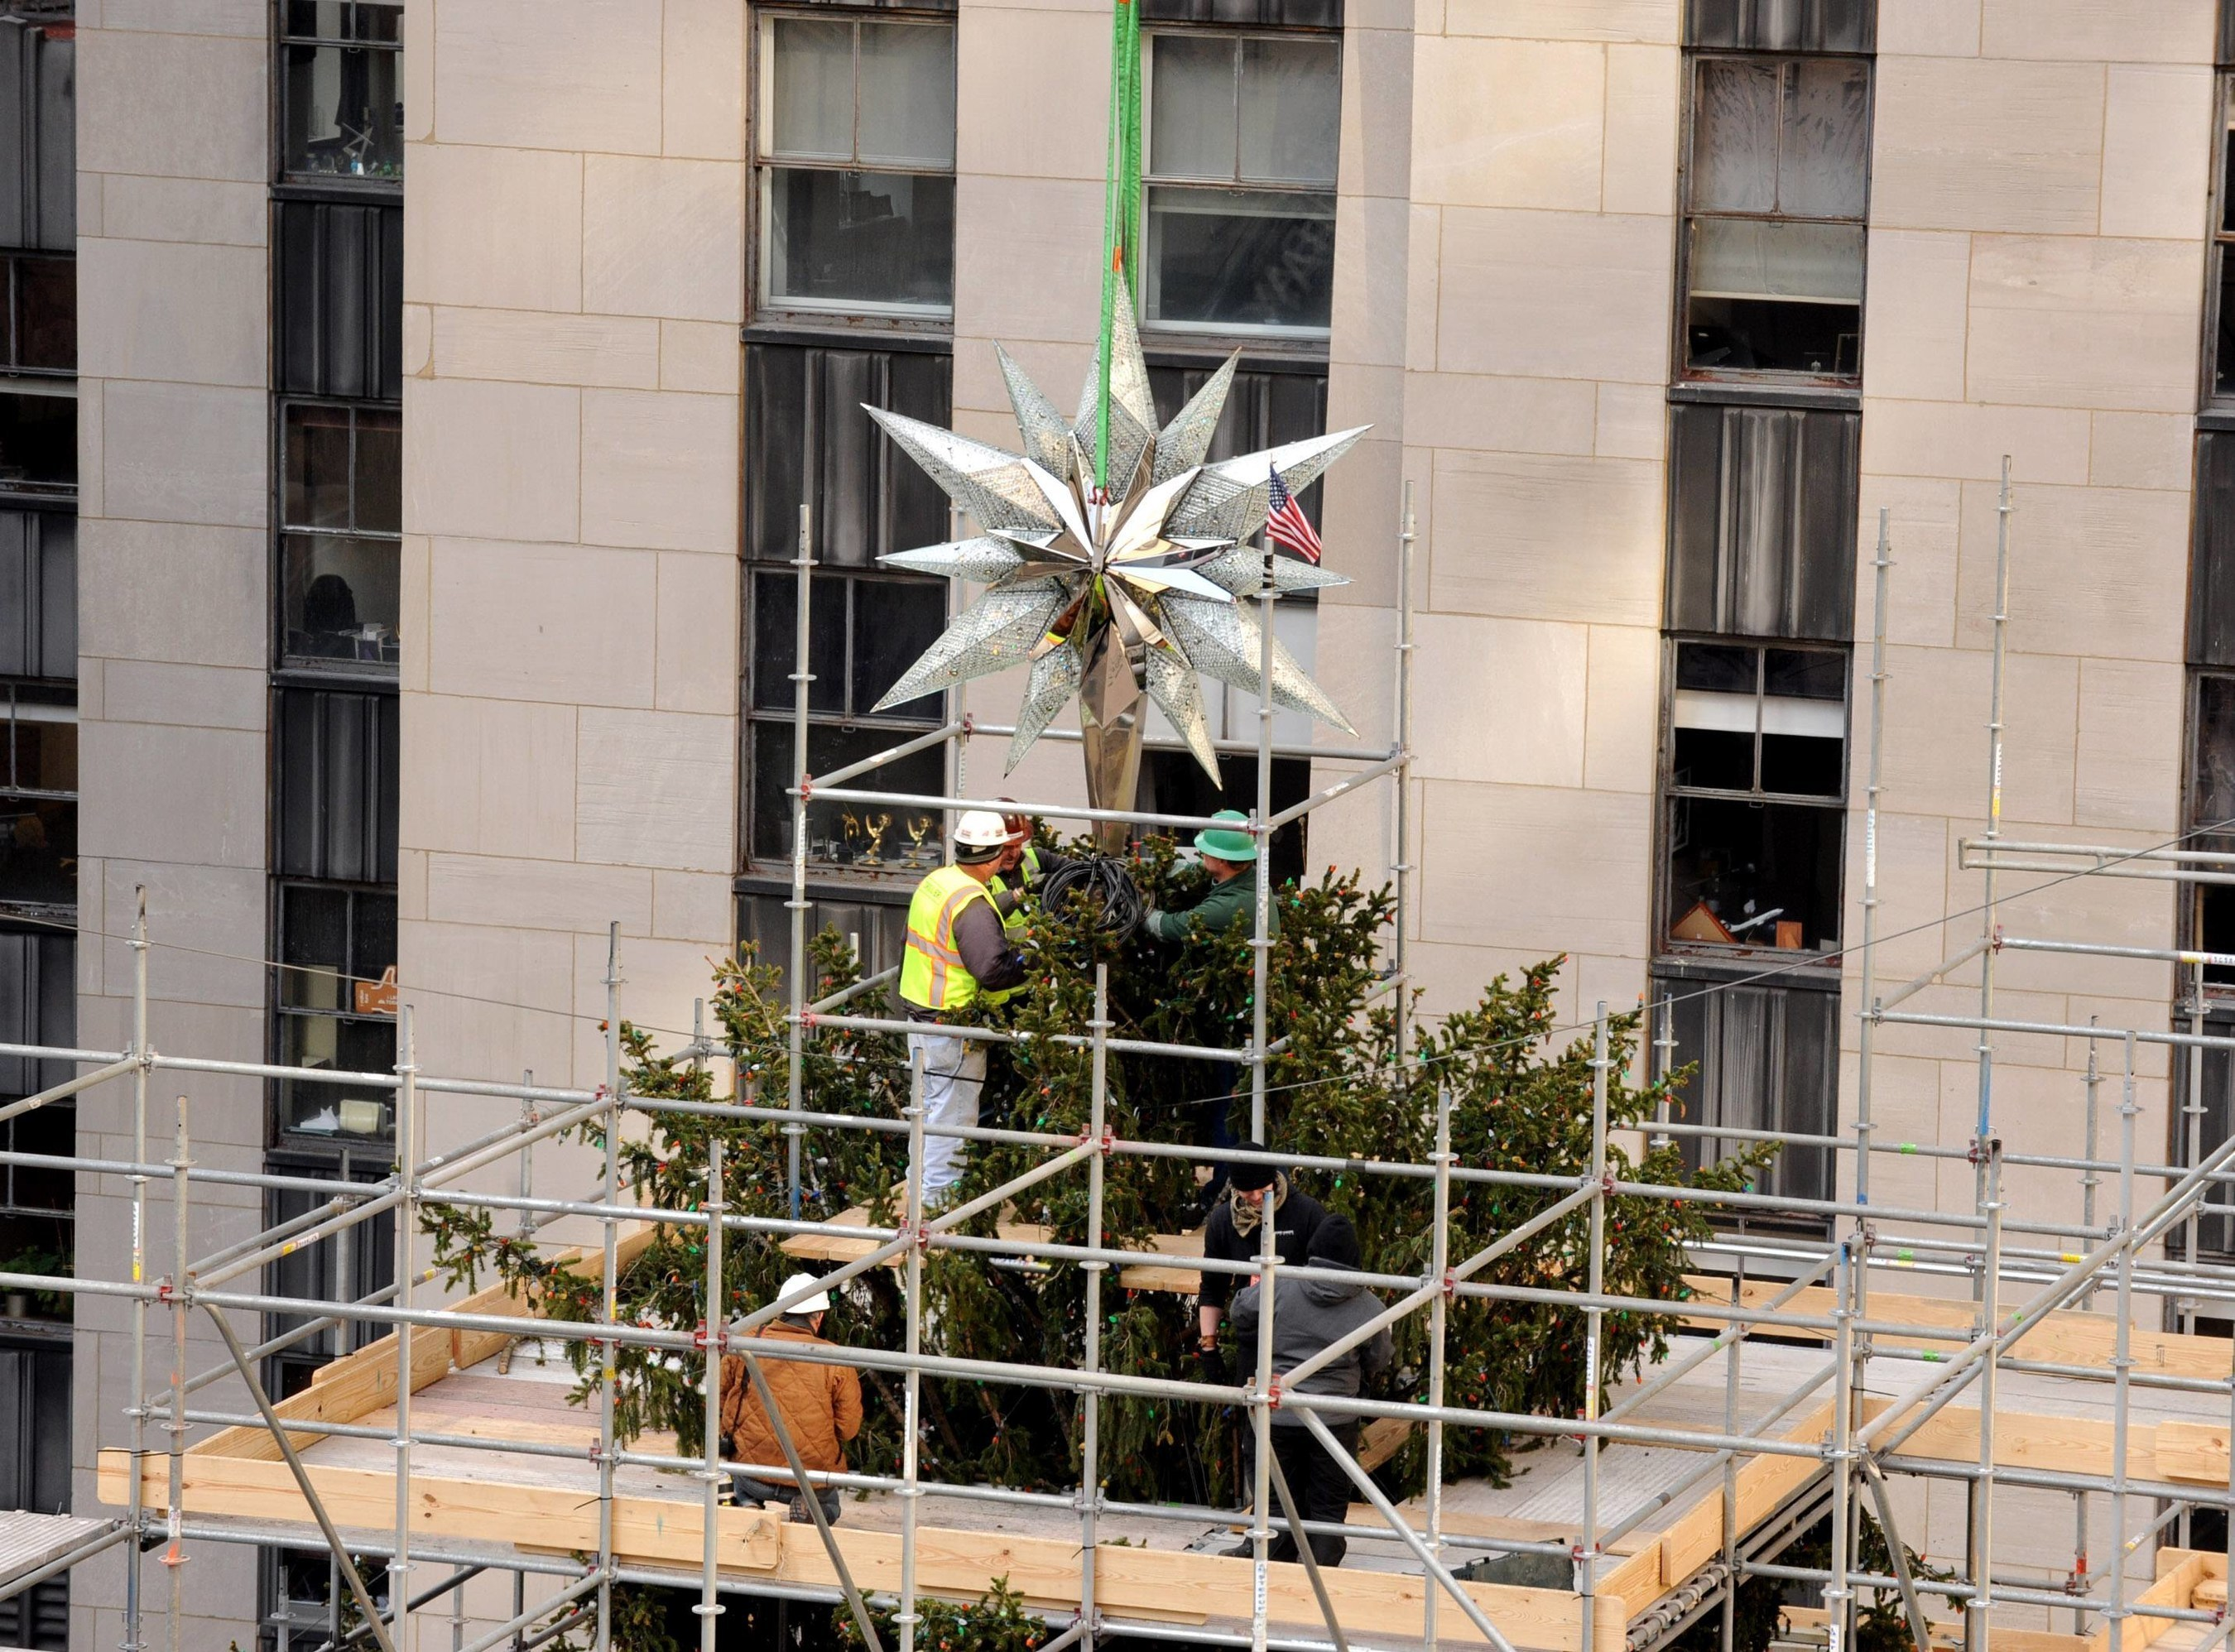 Swarovski christmas ornament 2004 - The Swarovski Star Is Placed On Top Of The 85 Foot Rockefeller Center Christmas Tree